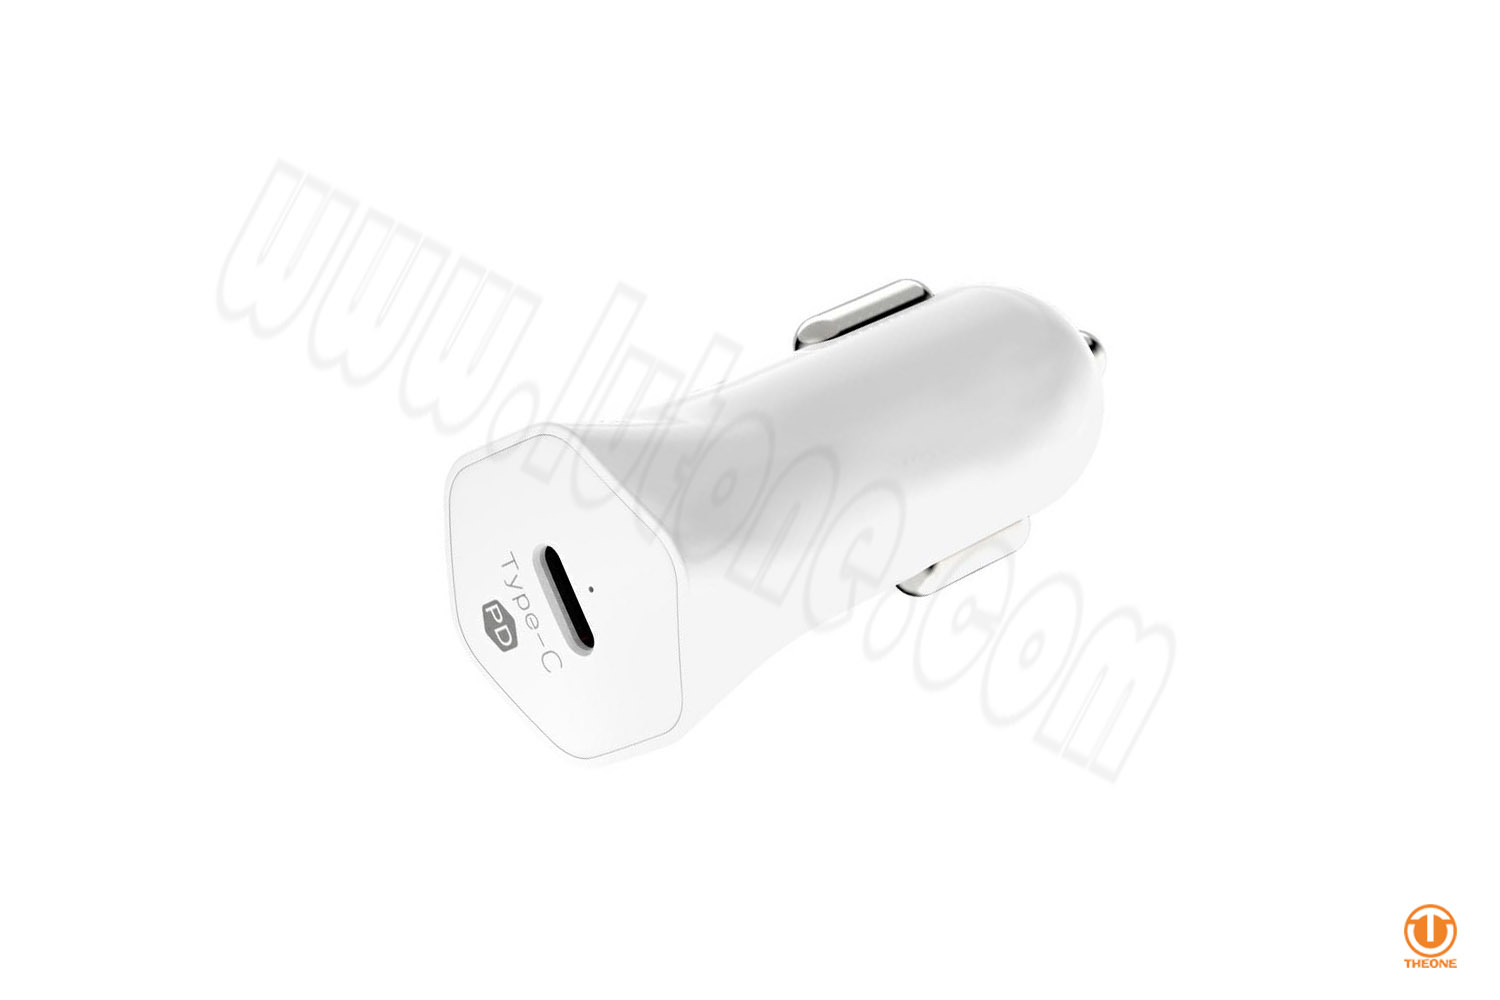 tc01c3-2 power delivery car charger